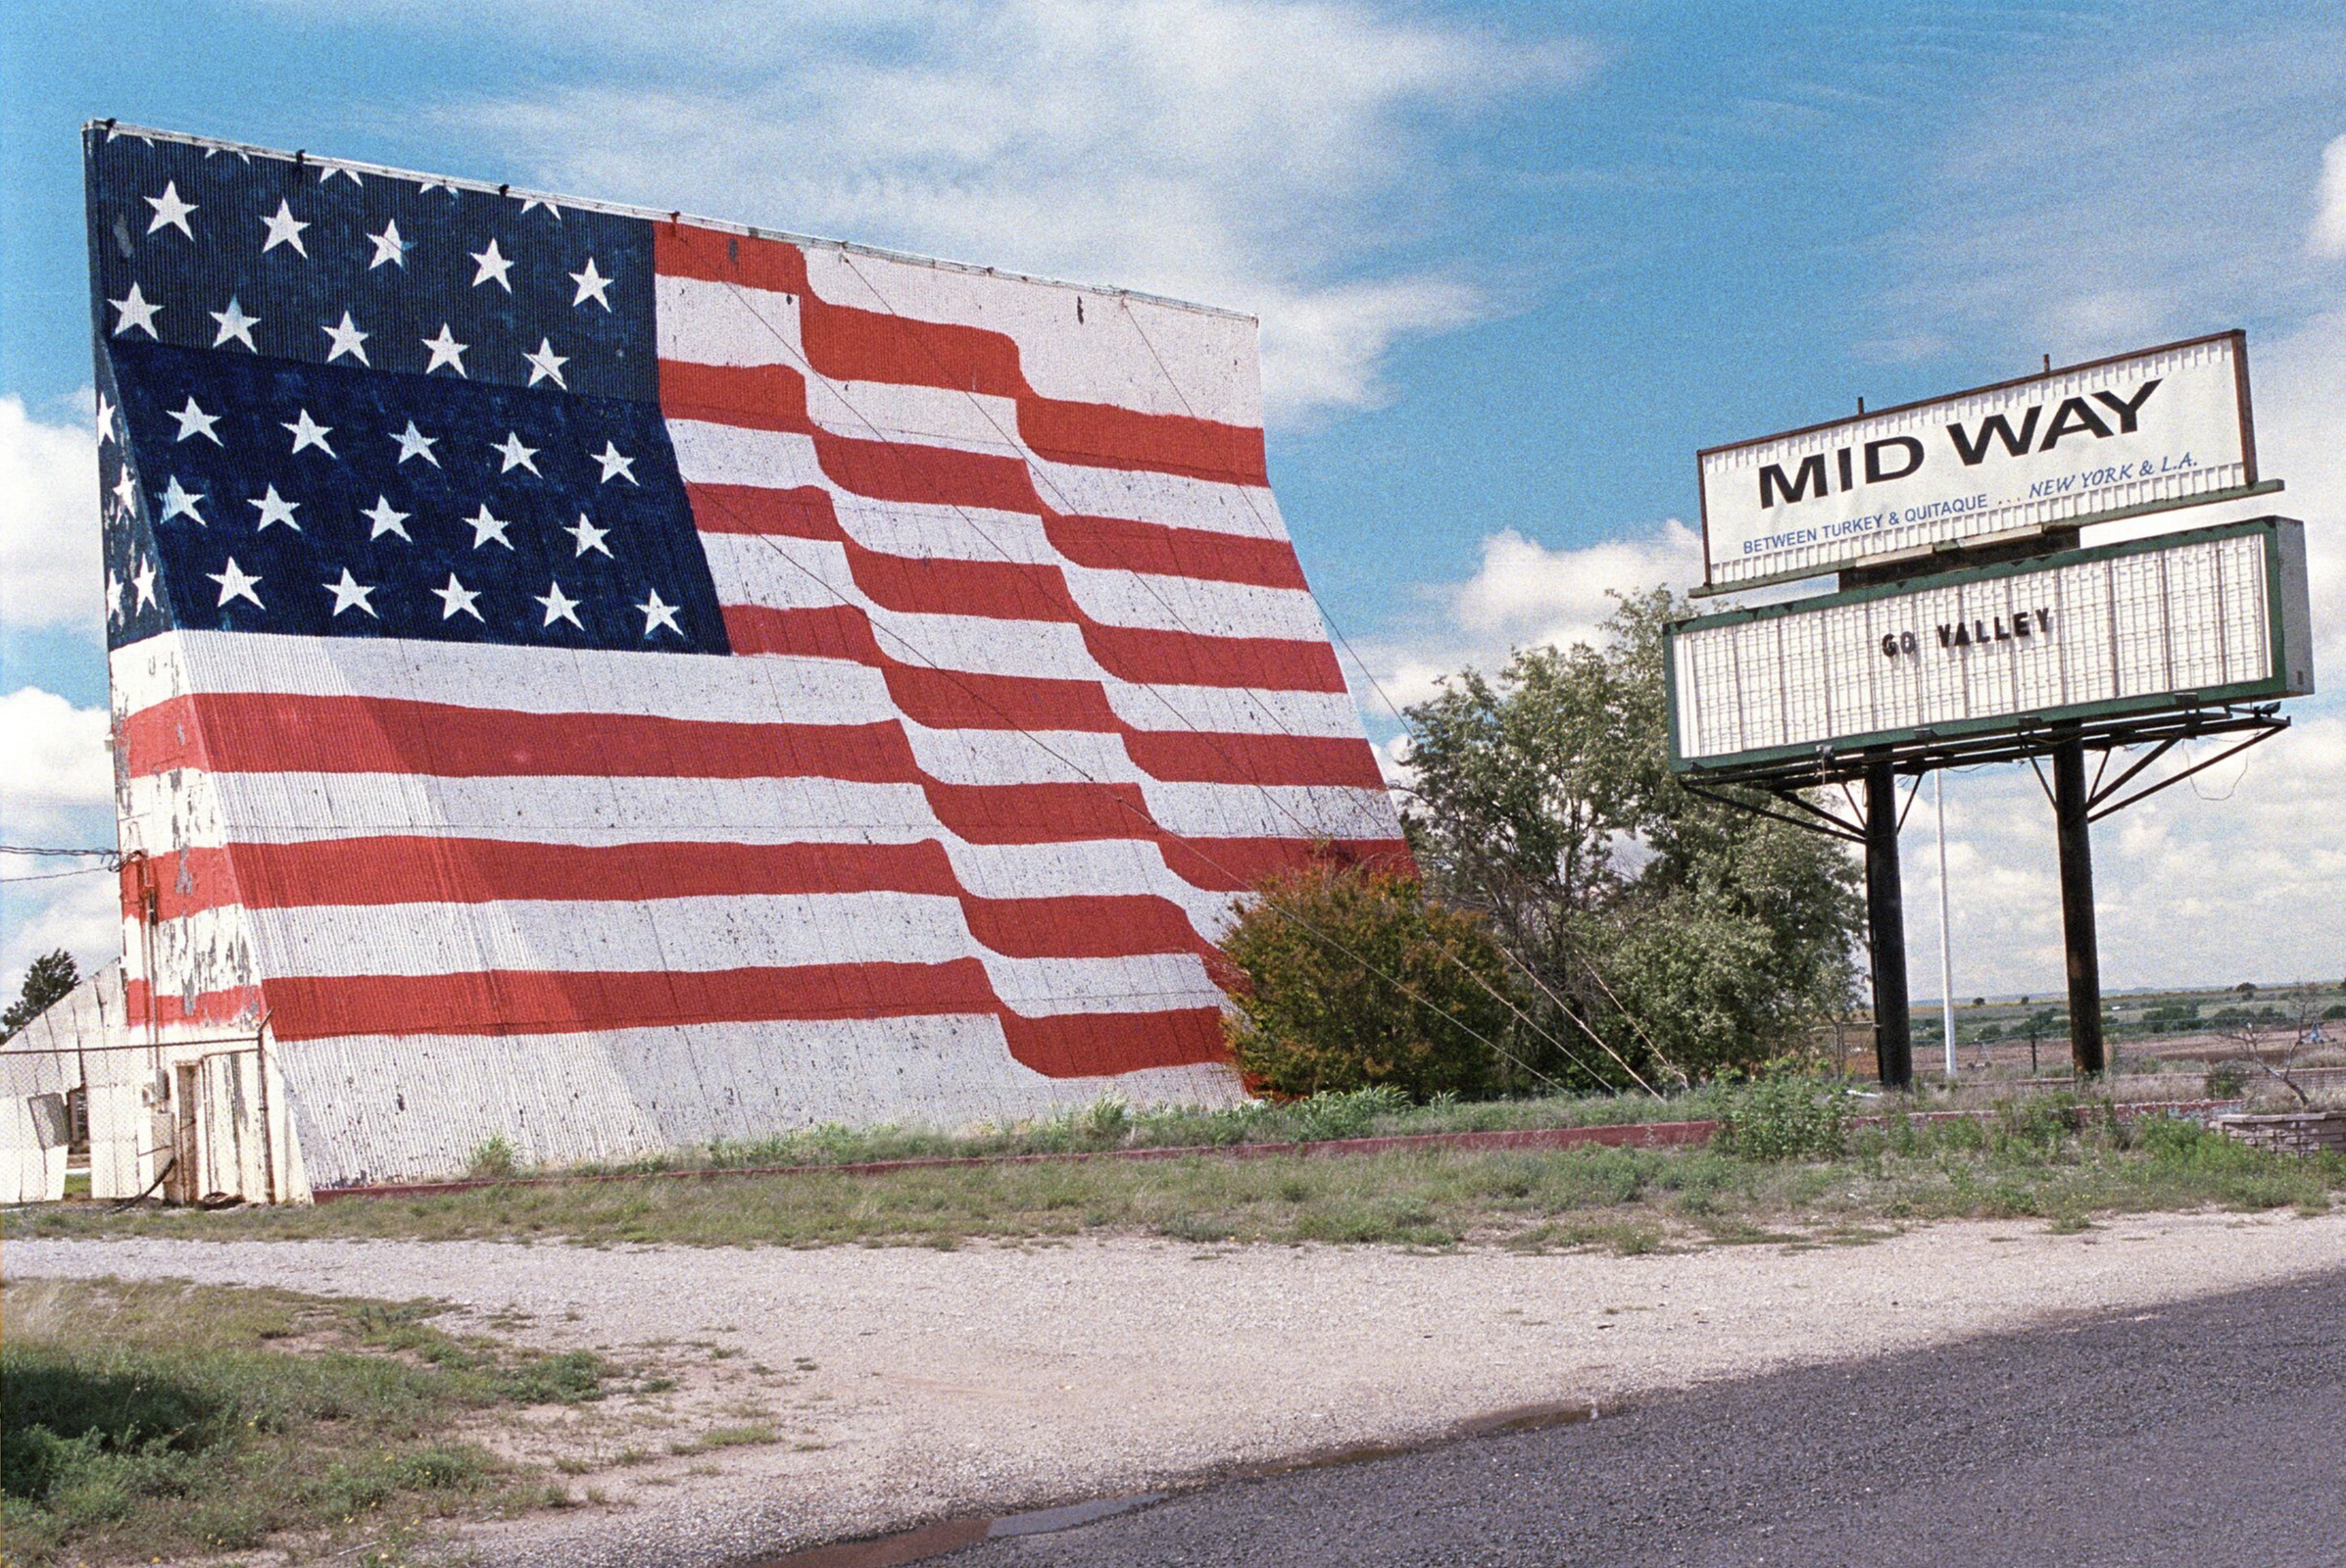 Midway Drive-in Theater, Quitaque, Texas, 2009